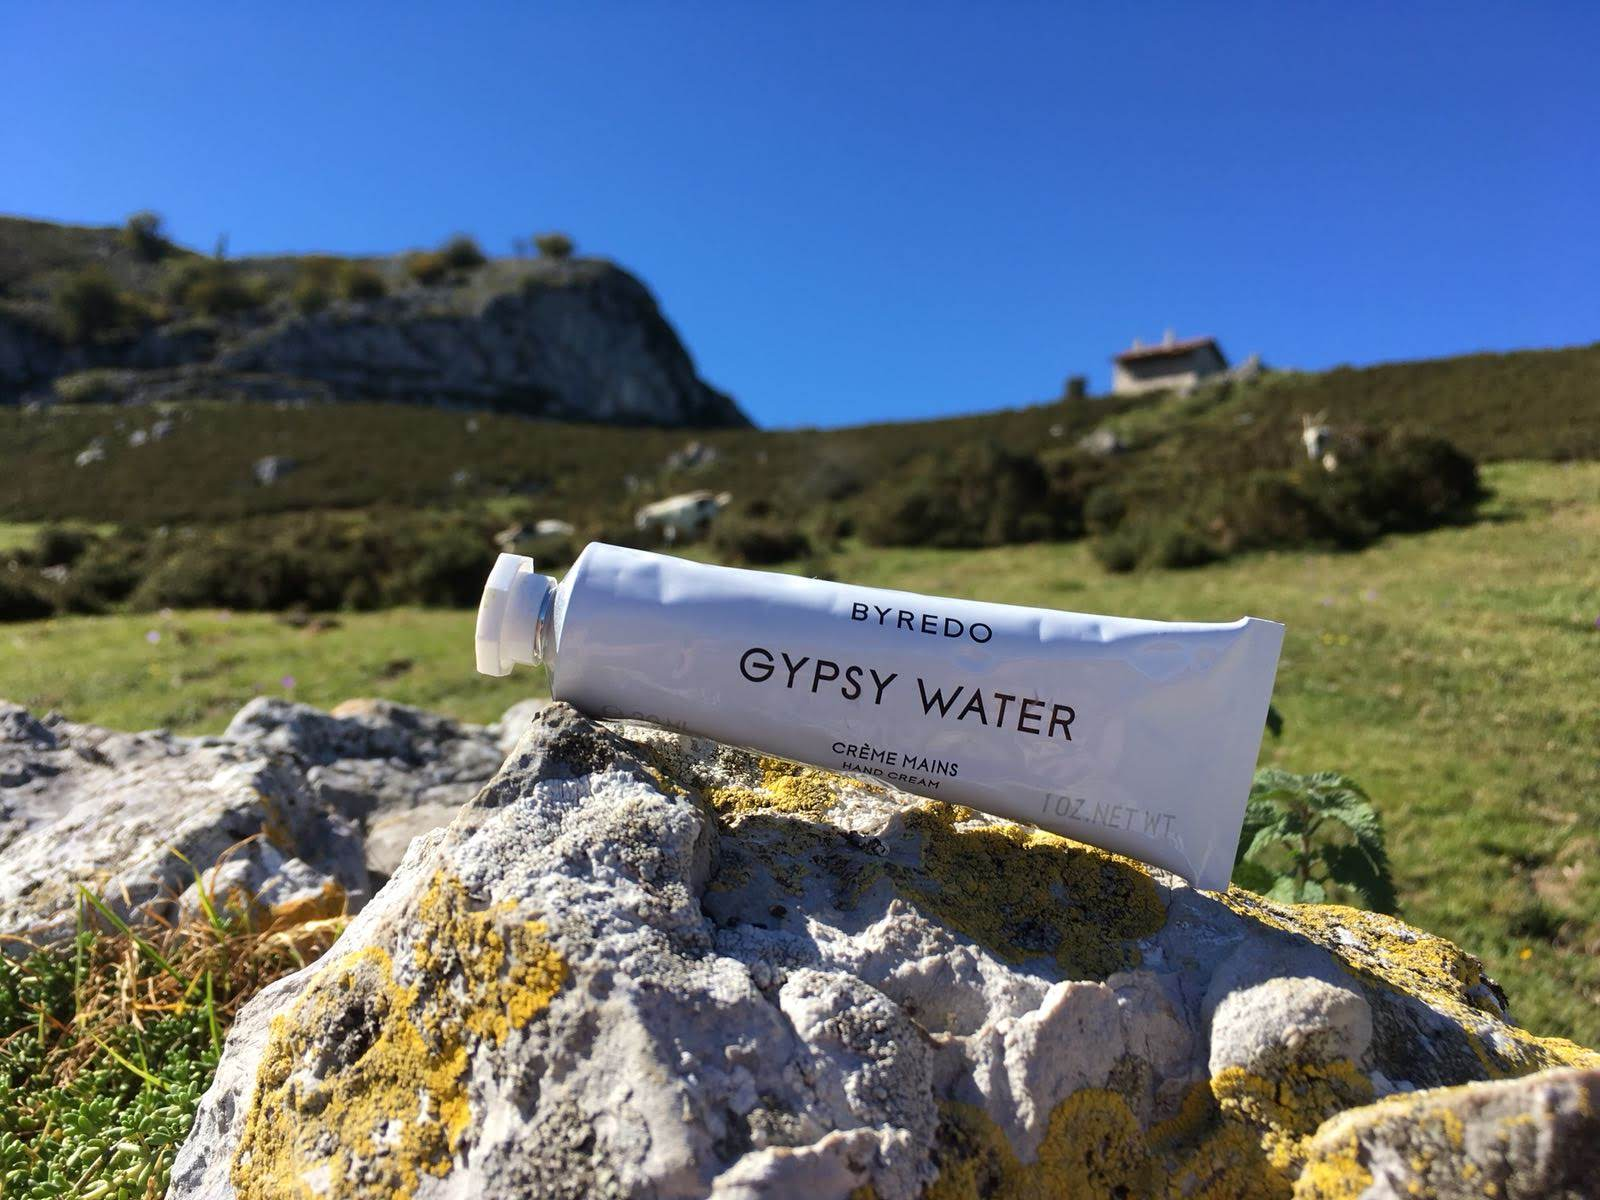 Gypsy Water de BYREDO